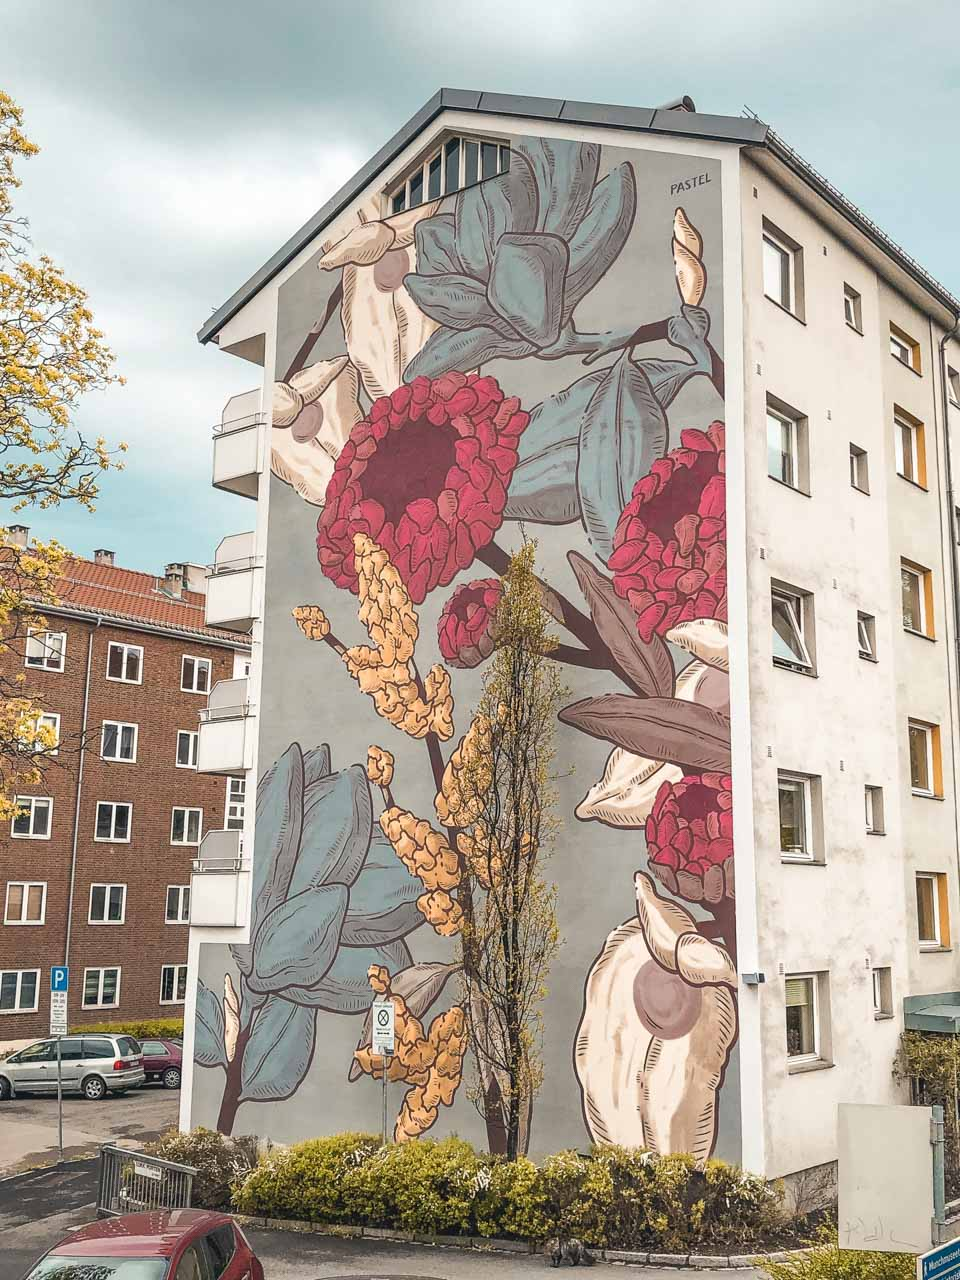 A mural in the Tøyen neighbourhood of Oslo, Norway